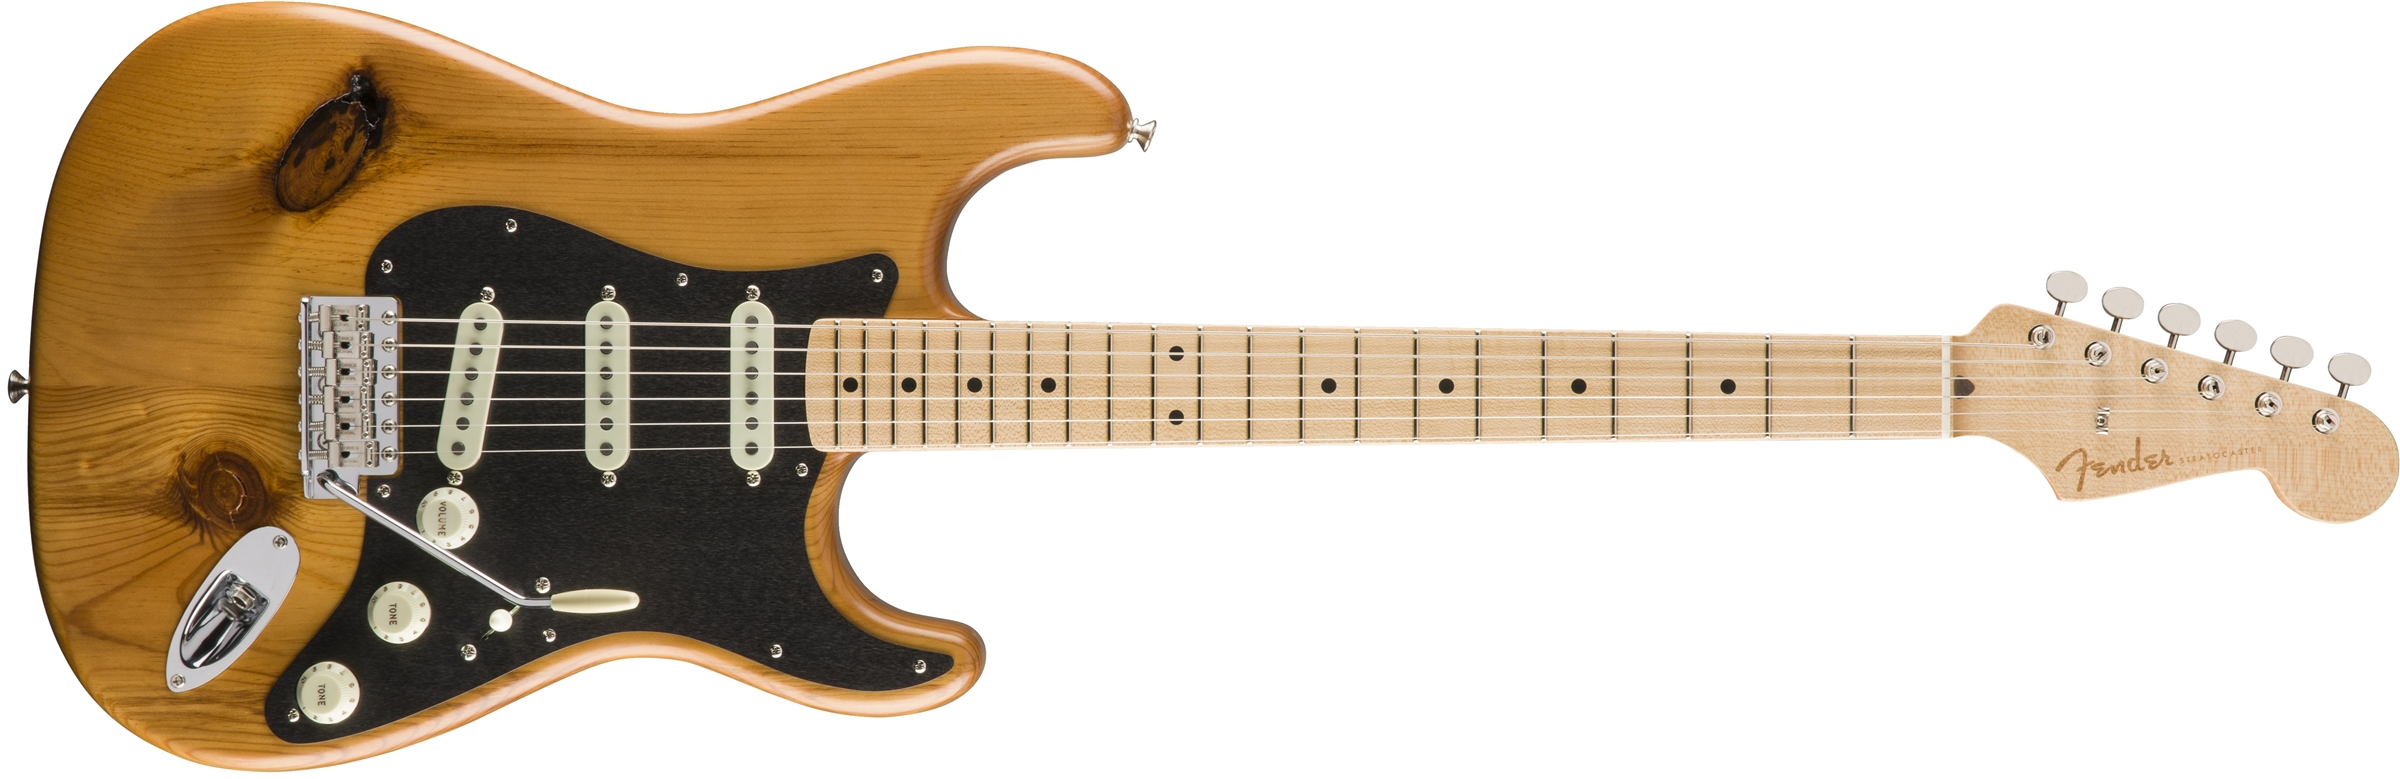 2017 Limited Edition American Vintage '59 Pine Stratocaster®